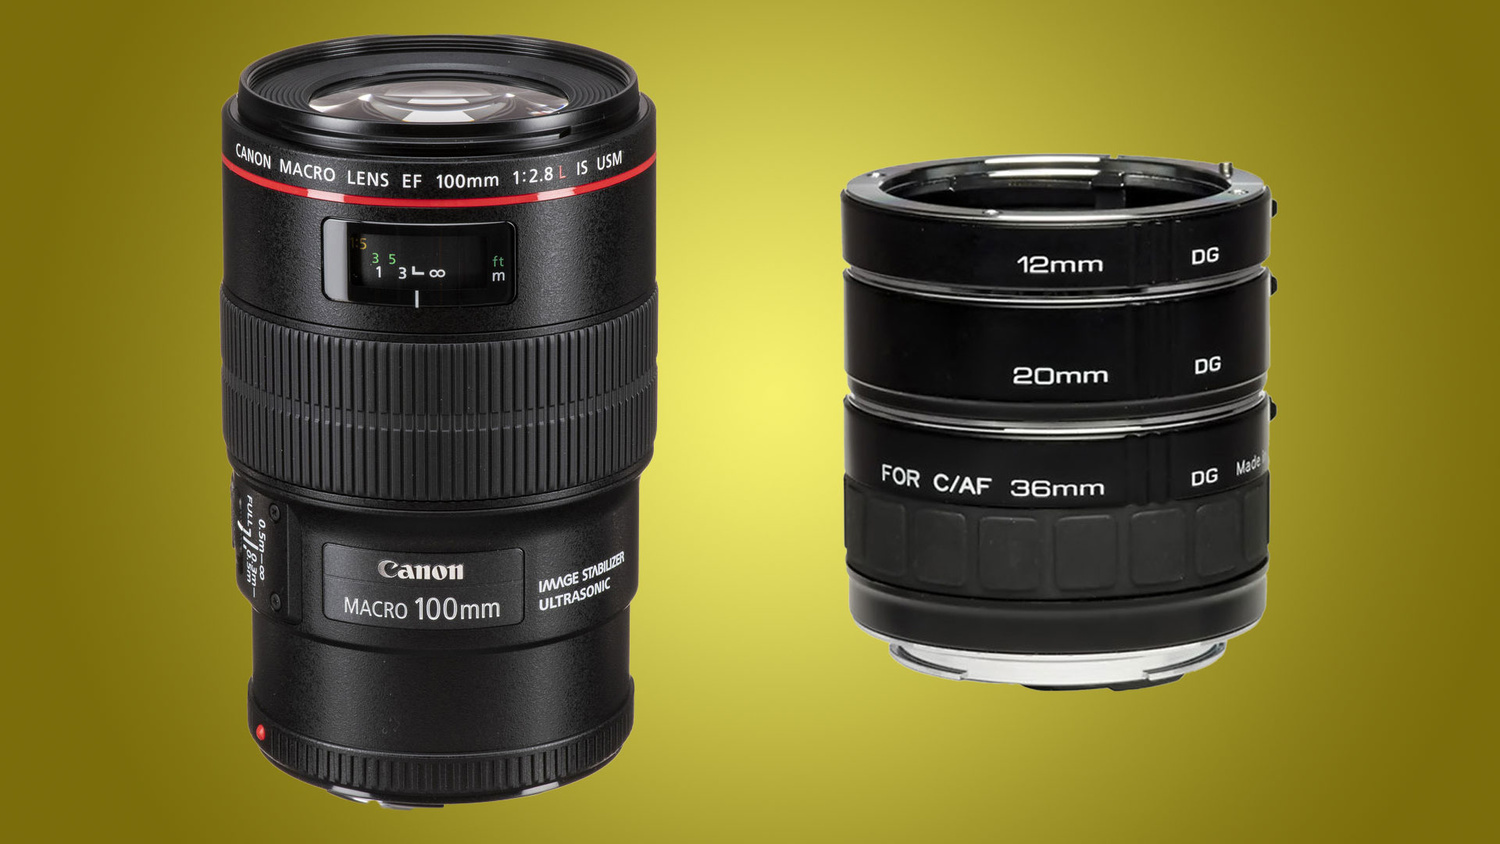 Macro lens and extension tubes example image